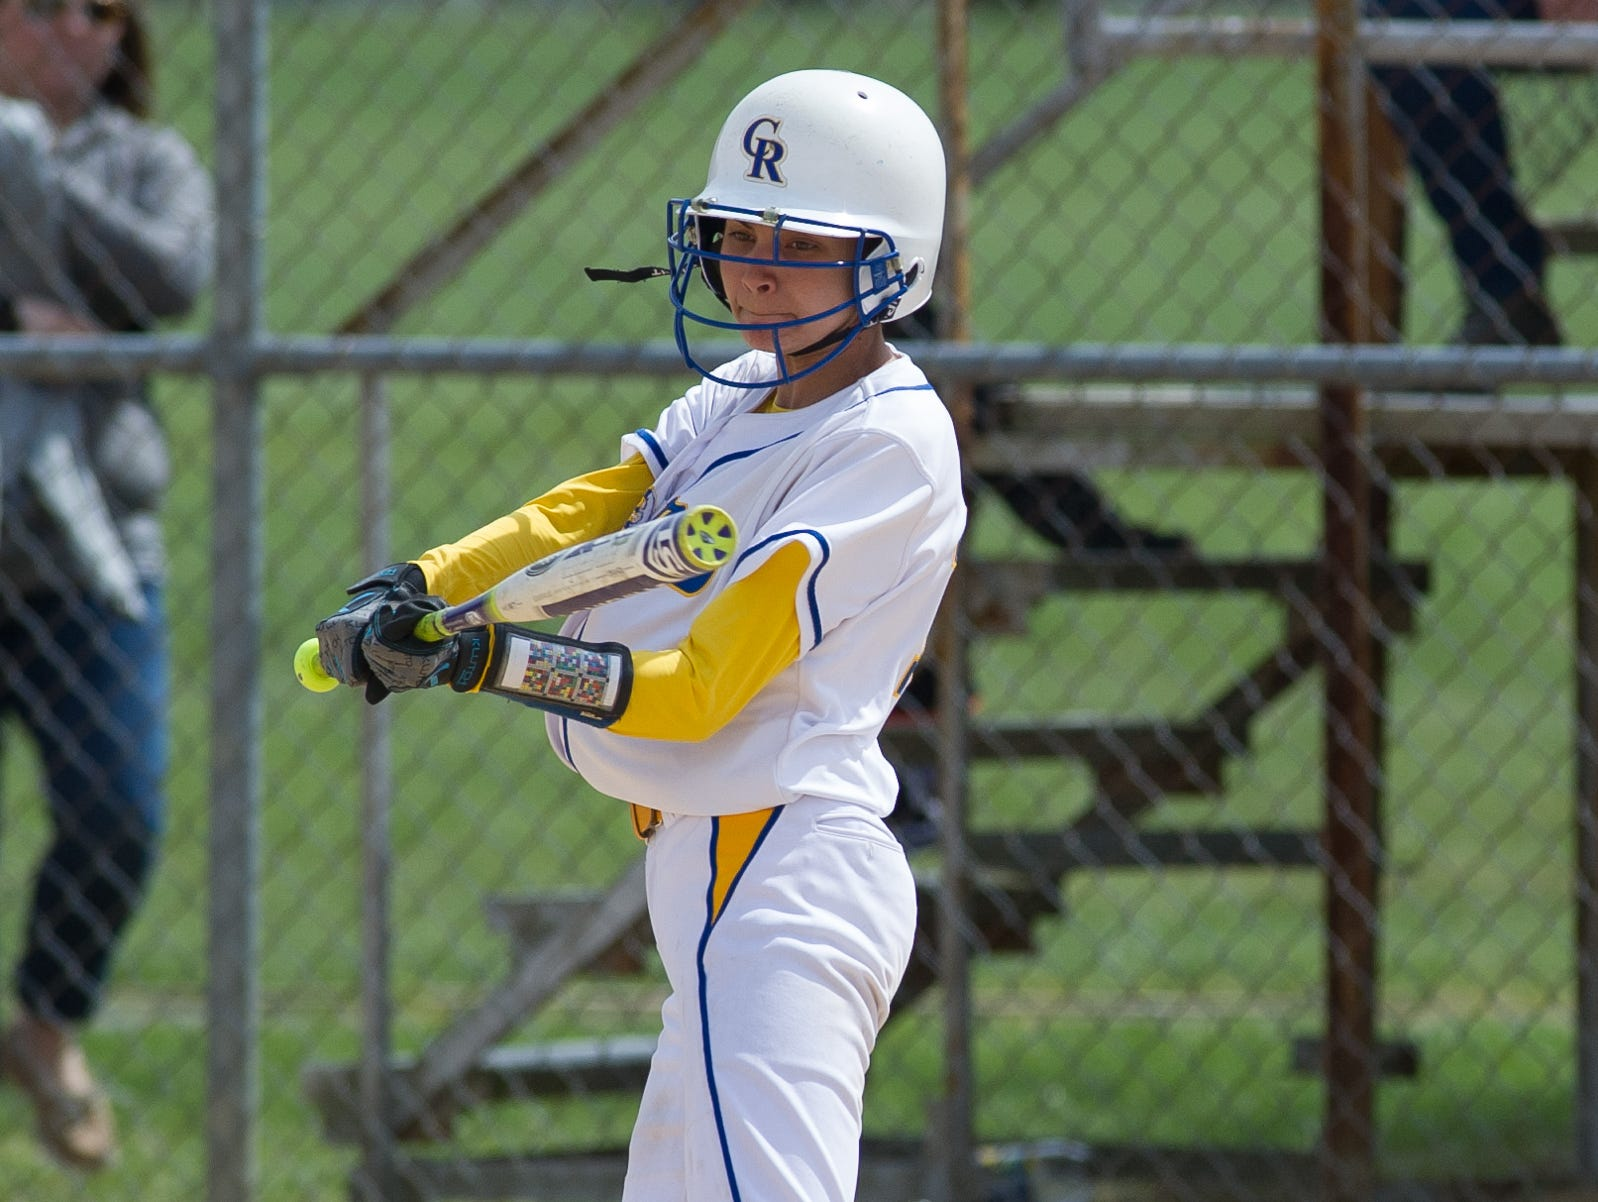 Caesar Rodney's Courtney Malin (15) with a hit in the 5th inning to advance a runner home in their game against Concord.